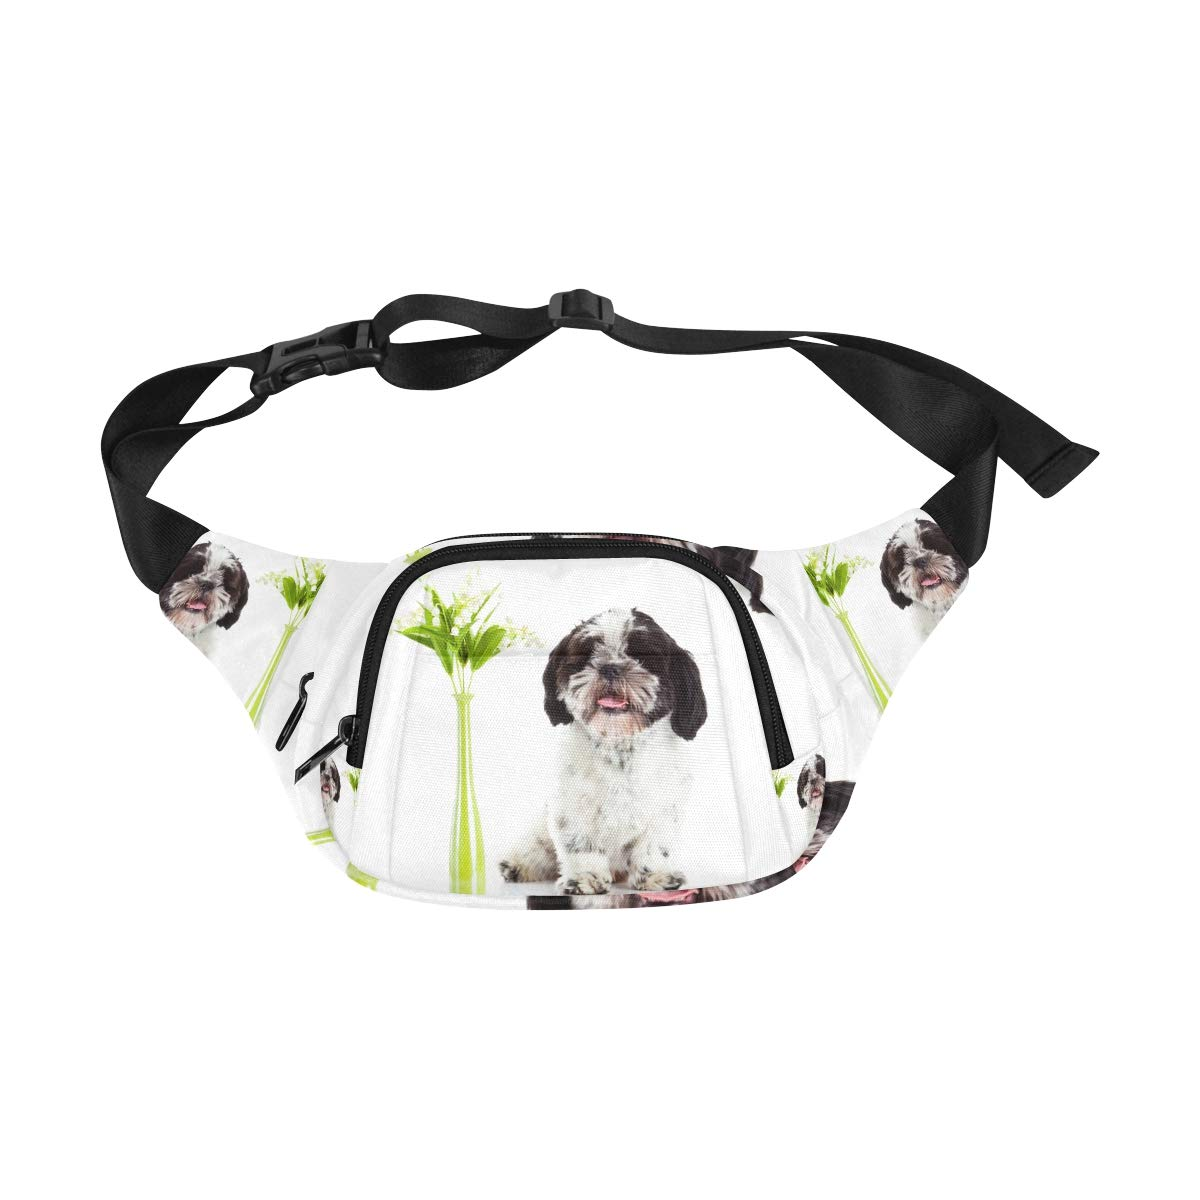 Lovely Dog And Tulip Bunch In Vase Fenny Packs Waist Bags Adjustable Belt Waterproof Nylon Travel Running Sport Vacation Party For Men Women Boys Girls Kids